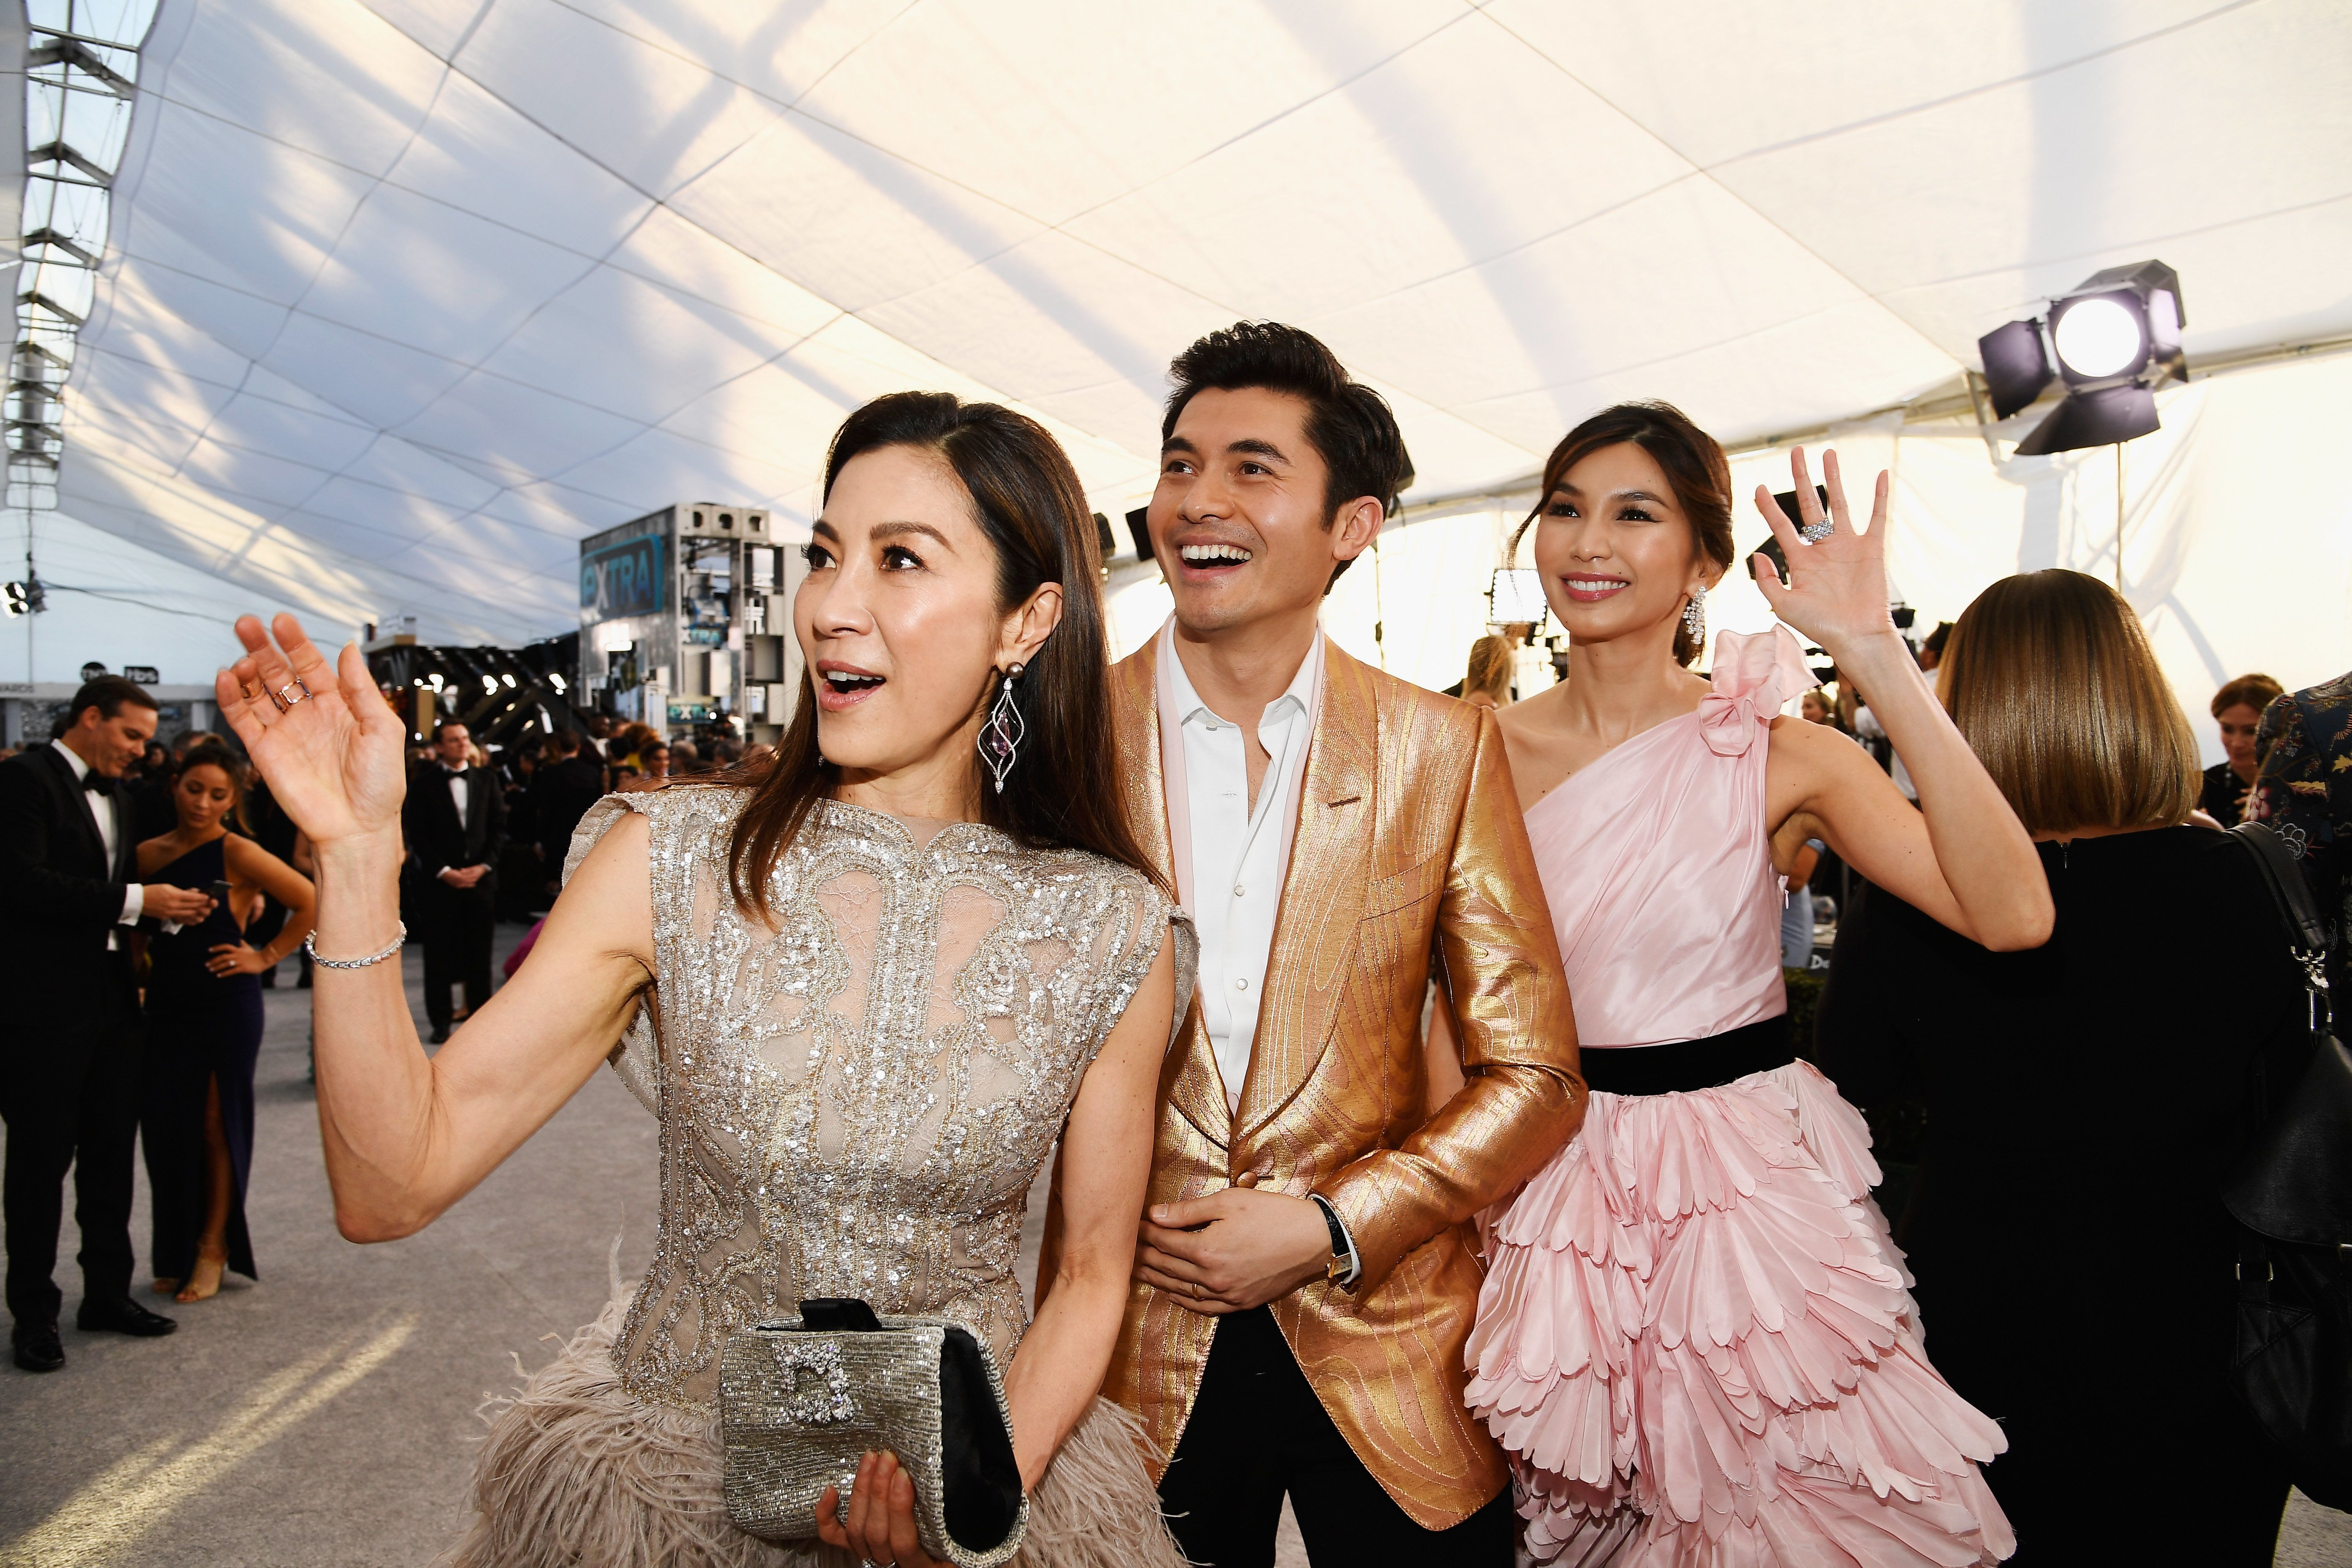 LOS ANGELES, CA - JANUARY 27:  (L-R) Michelle Yeoh, Henry Golding, and Gemma Chan attend the 25th Annual Screen ActorsGuild Awards at The Shrine Auditorium on January 27, 2019 in Los Angeles, California.  (Photo by Kevork Djansezian/Getty Images)